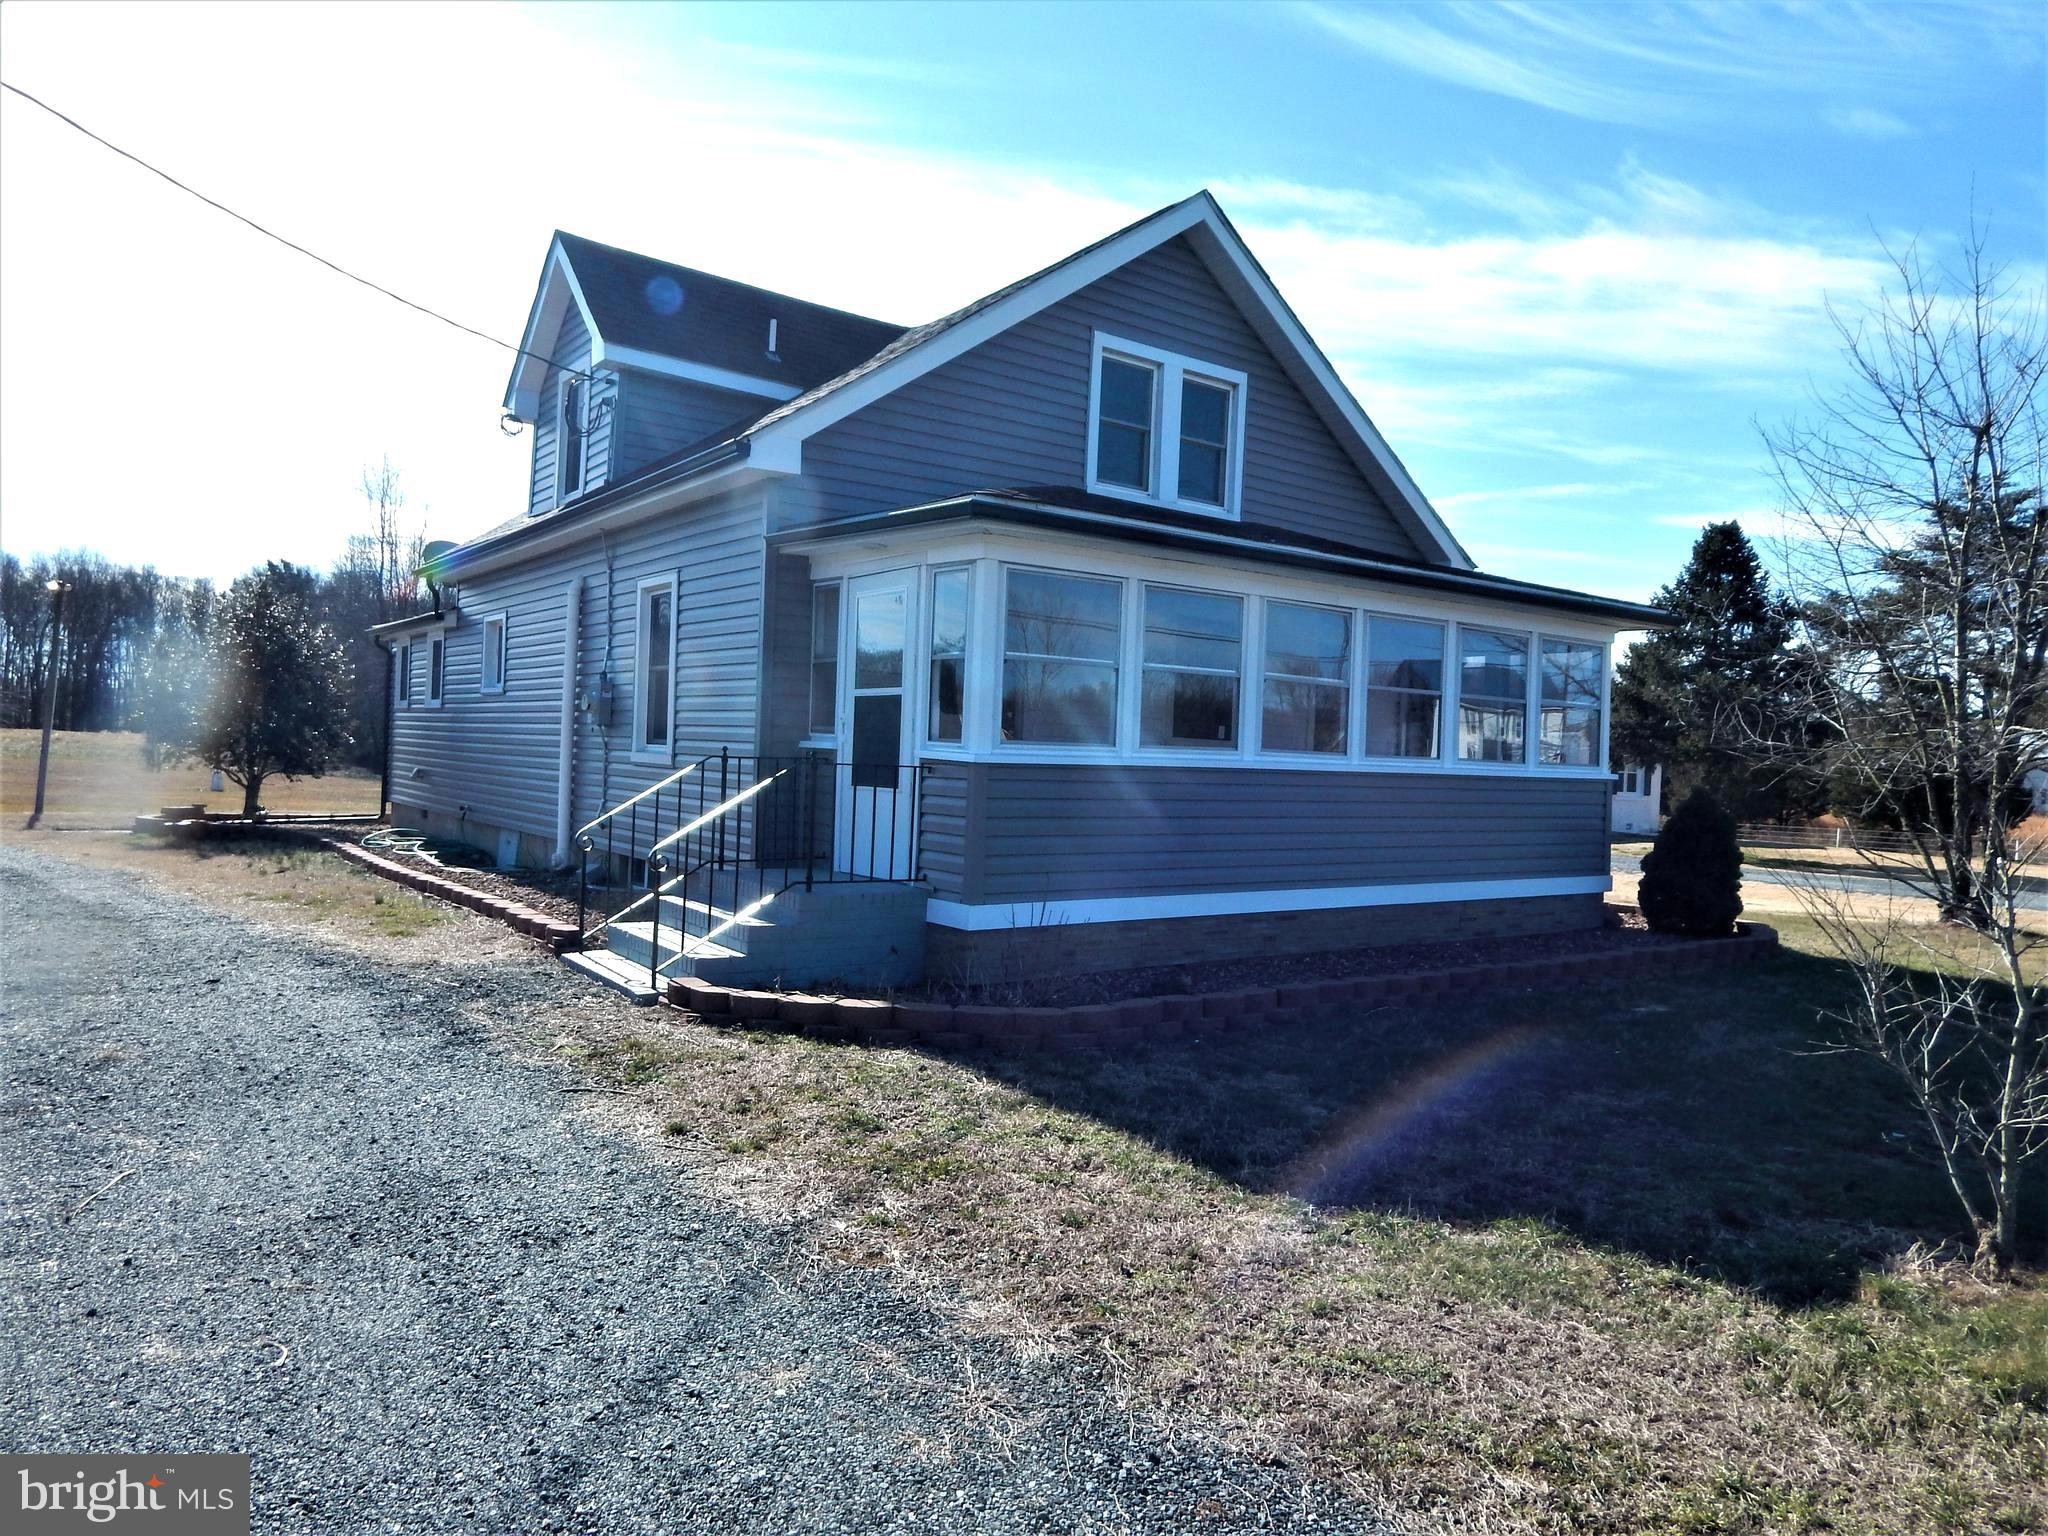 If a large, 40 x 38 concrete block garage is what you are looking for, this could be the one!  3 Bedrooms, 2 bathrooms, older Cape Cod, totally renovated, sitting on 1.3 acres is ready for a new owner. Anyone looking to be close to Maryland, this house is only 35 minutes to the Bay Bridge!